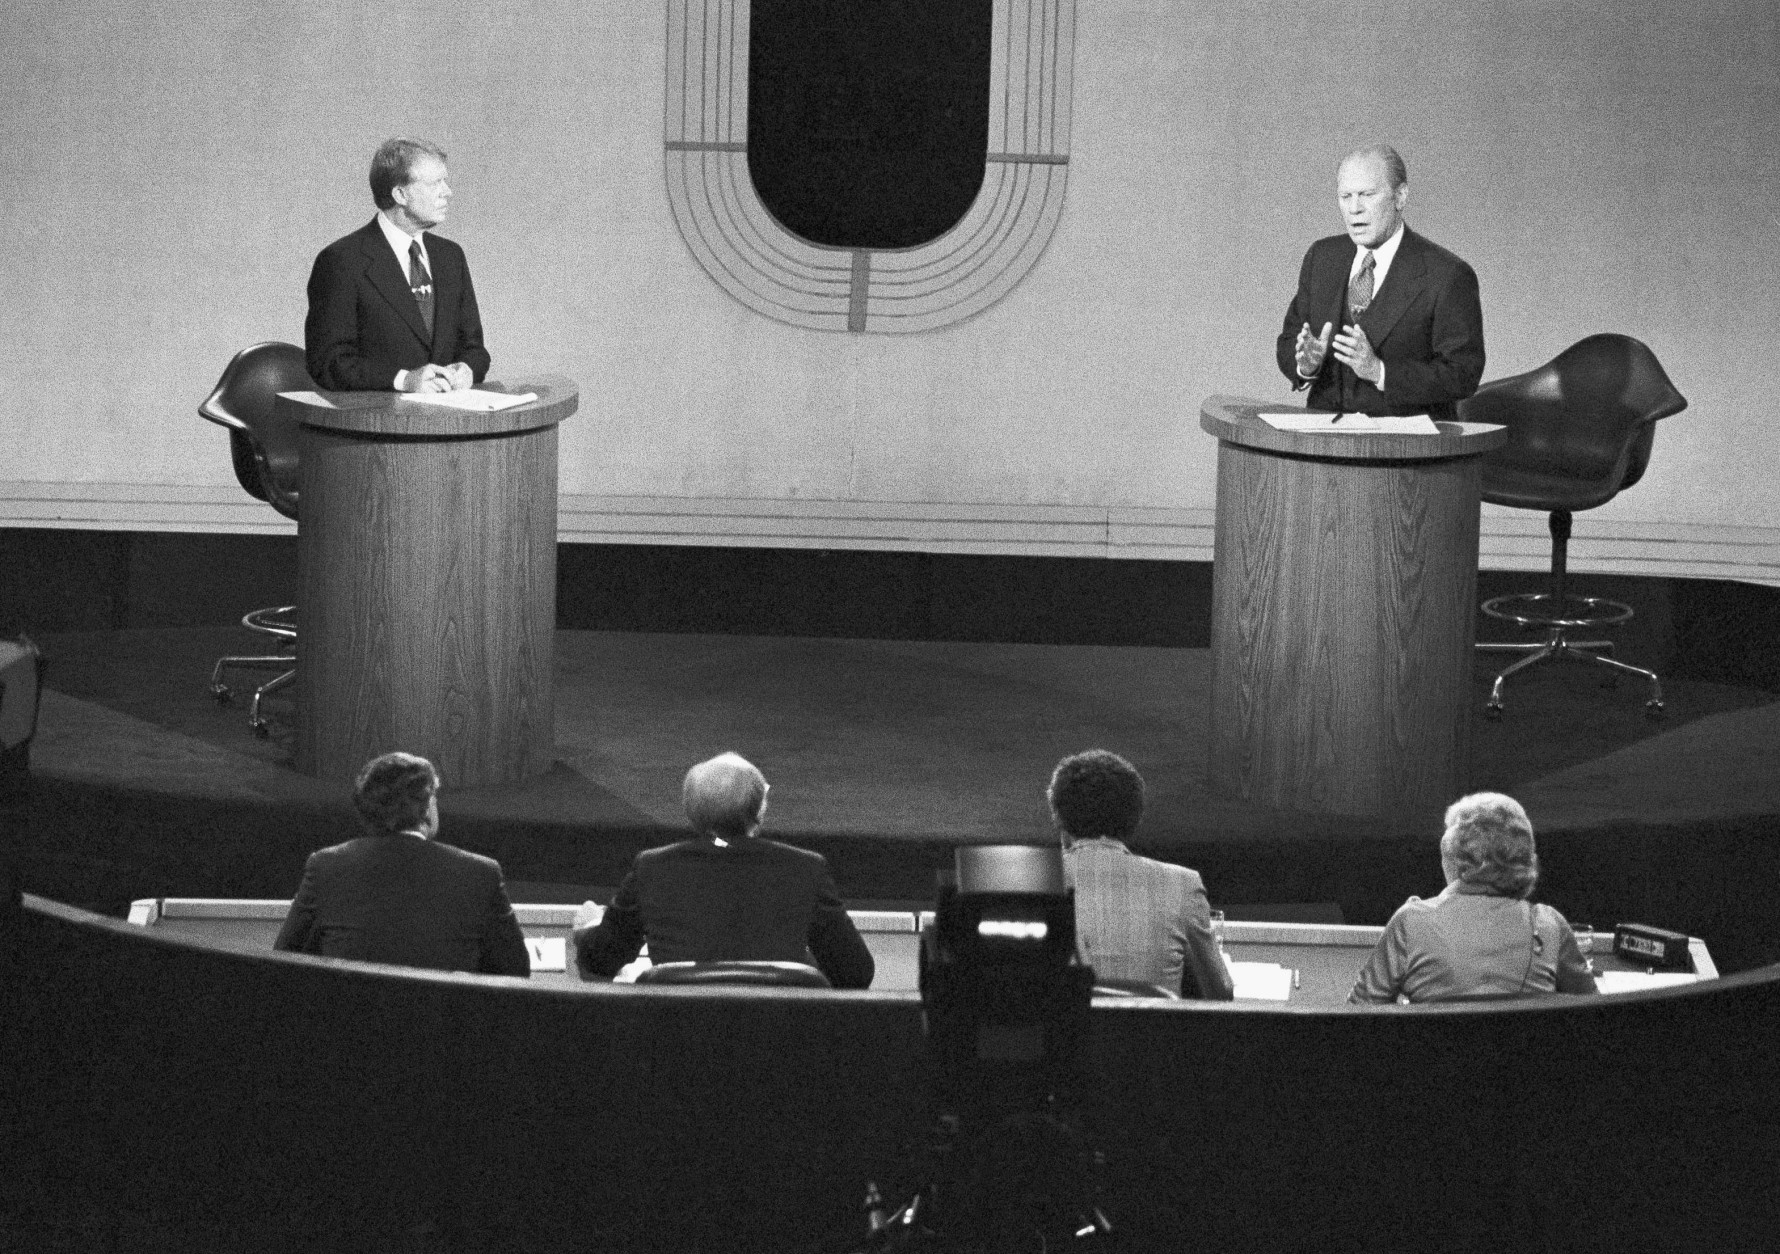 President Gerald Ford, right, emphasized a point during his second debate with Jimmy Carter, left, at Palace of  Fine Arts Theater, Wednesday, Oct. 6, 1976, San Francisco, Calif. (AP Photo)